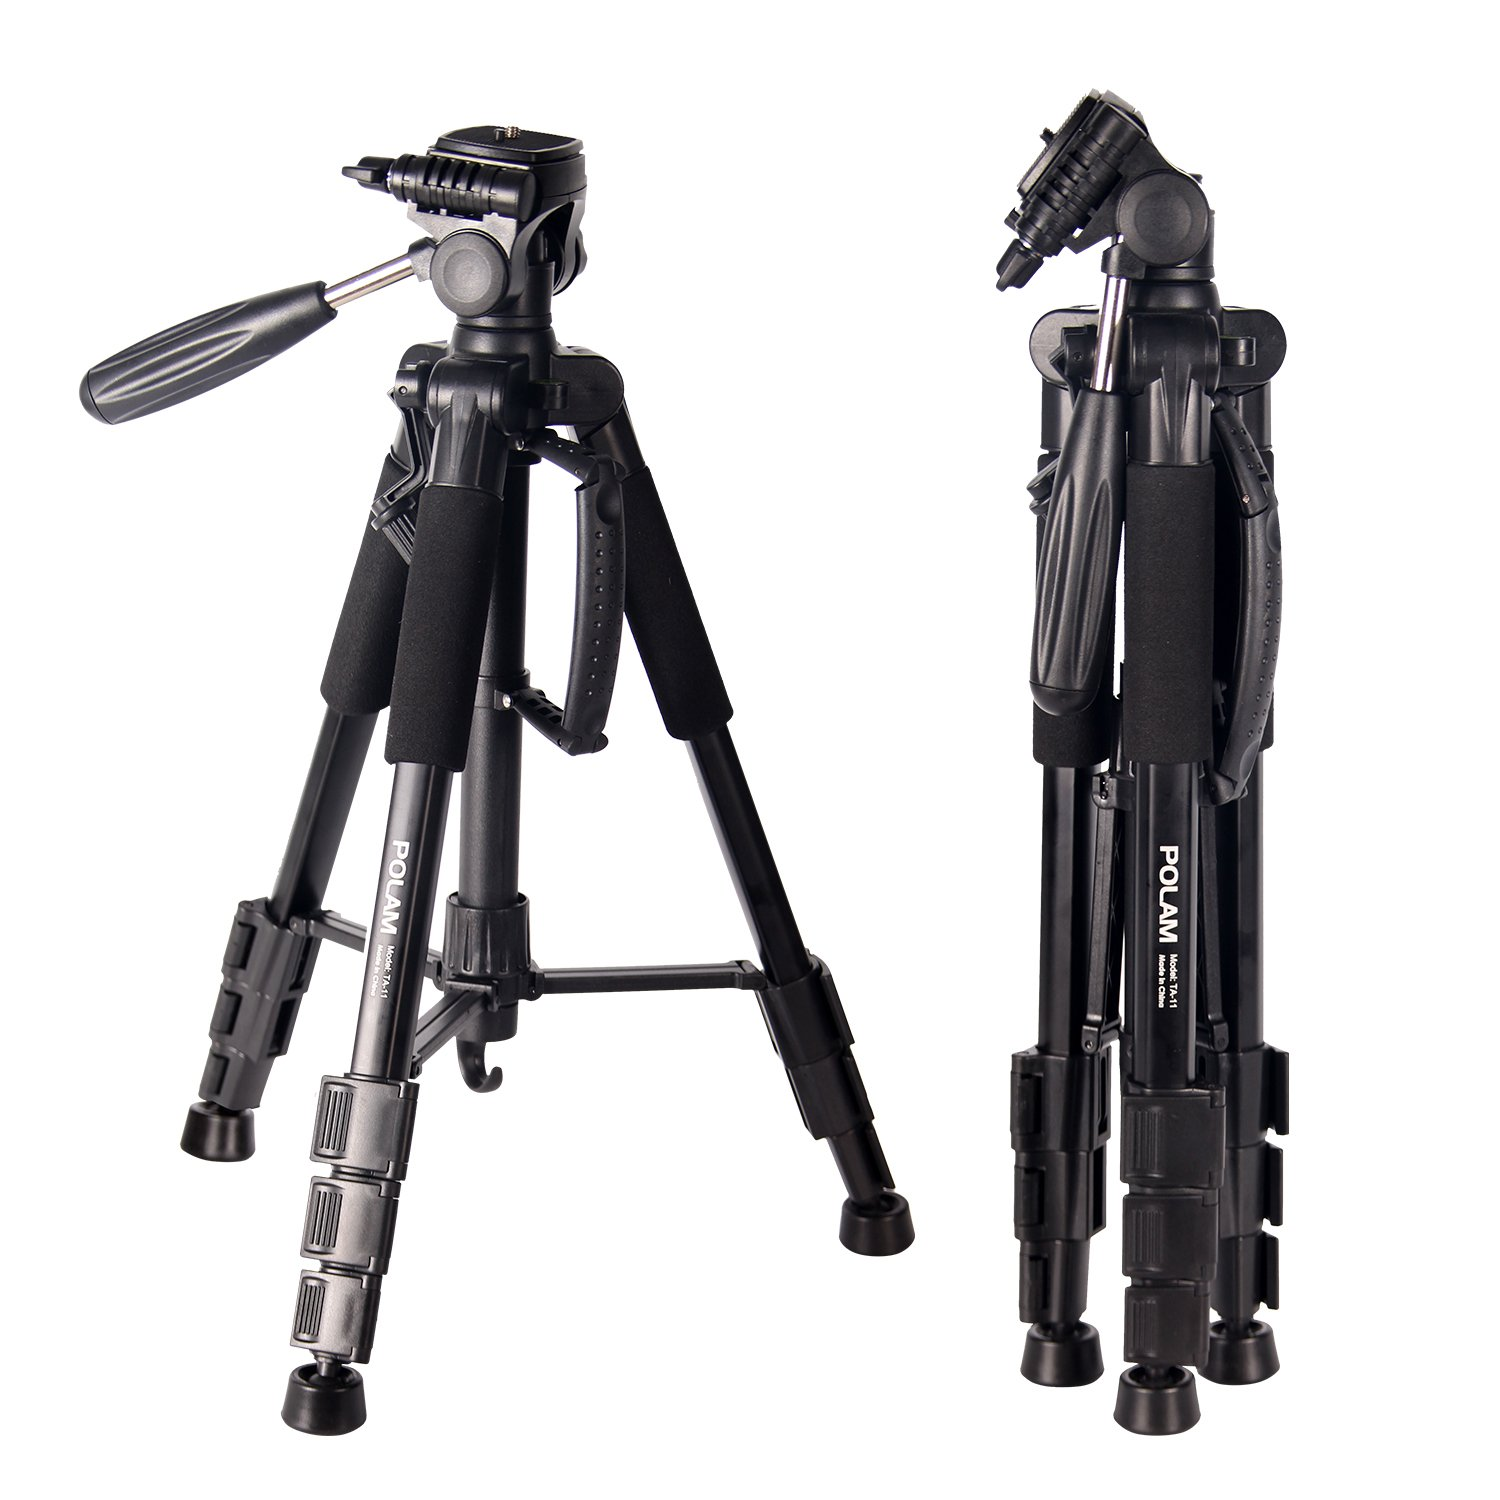 POLAM-FOTO 55'' Travel Camera Tripod,Compact Tripod with Bubble Level,Lightweight Aluminum Tripod with Carry Bag for DSLR/SLR fits with Canon/Nikon/Sony/etc